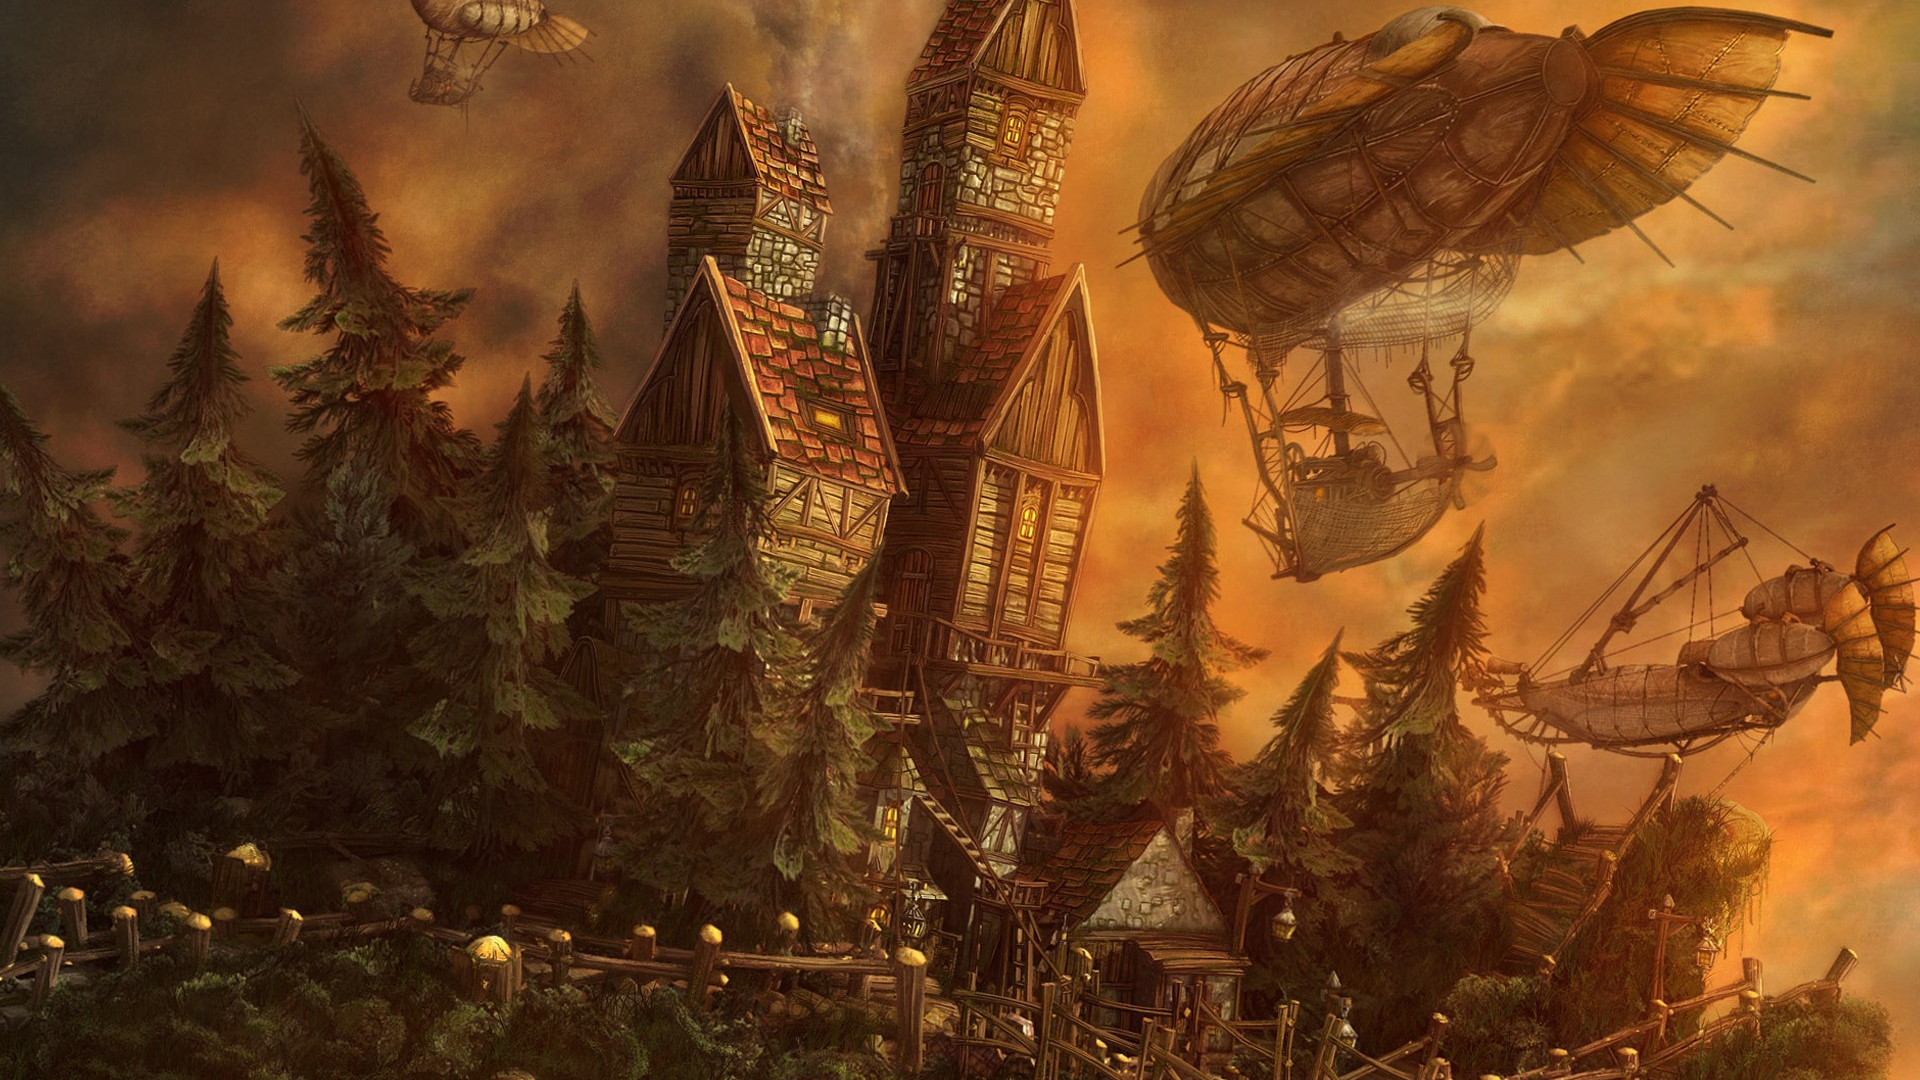 Steampunk Wallpaper 1600x900 Images amp Pictures   Becuo 1920x1080